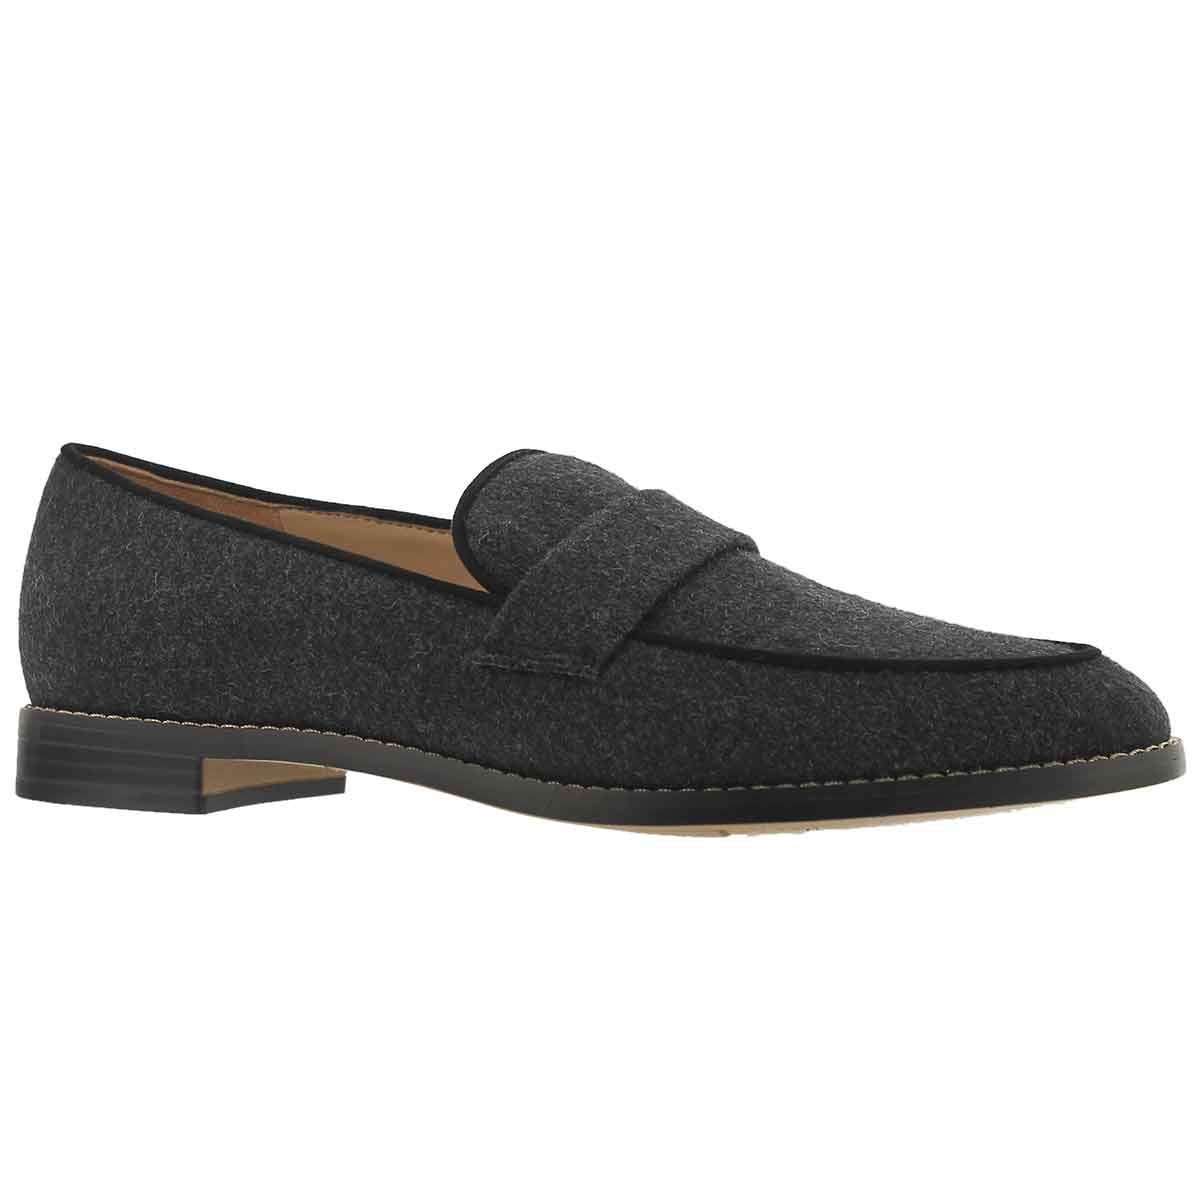 Women's HUDLEY grey casual slip on shoes